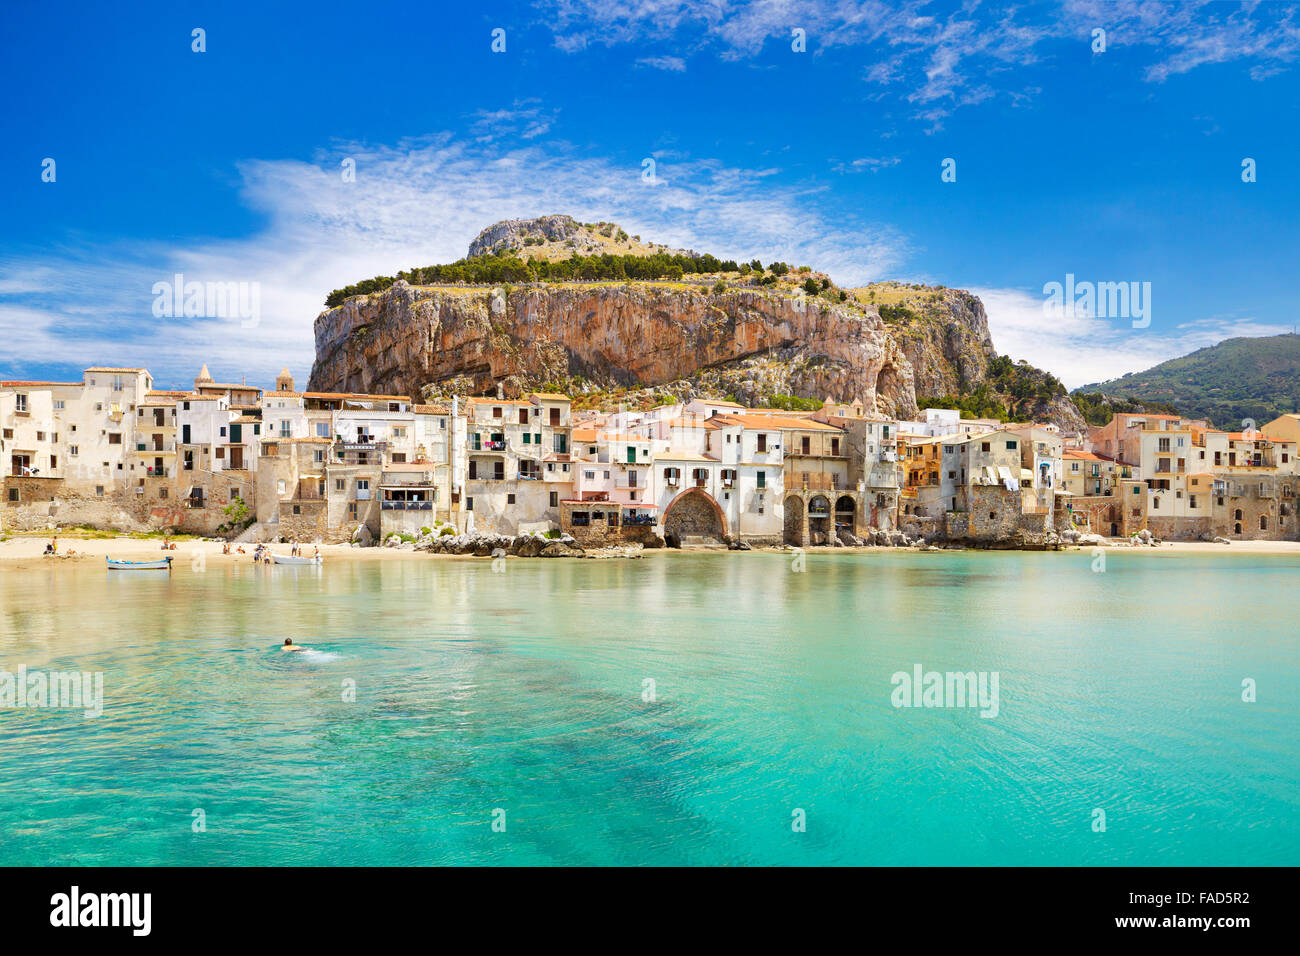 Medieval houses and La Rocca Hill, Cefalu, Sicily, Italy - Stock Image